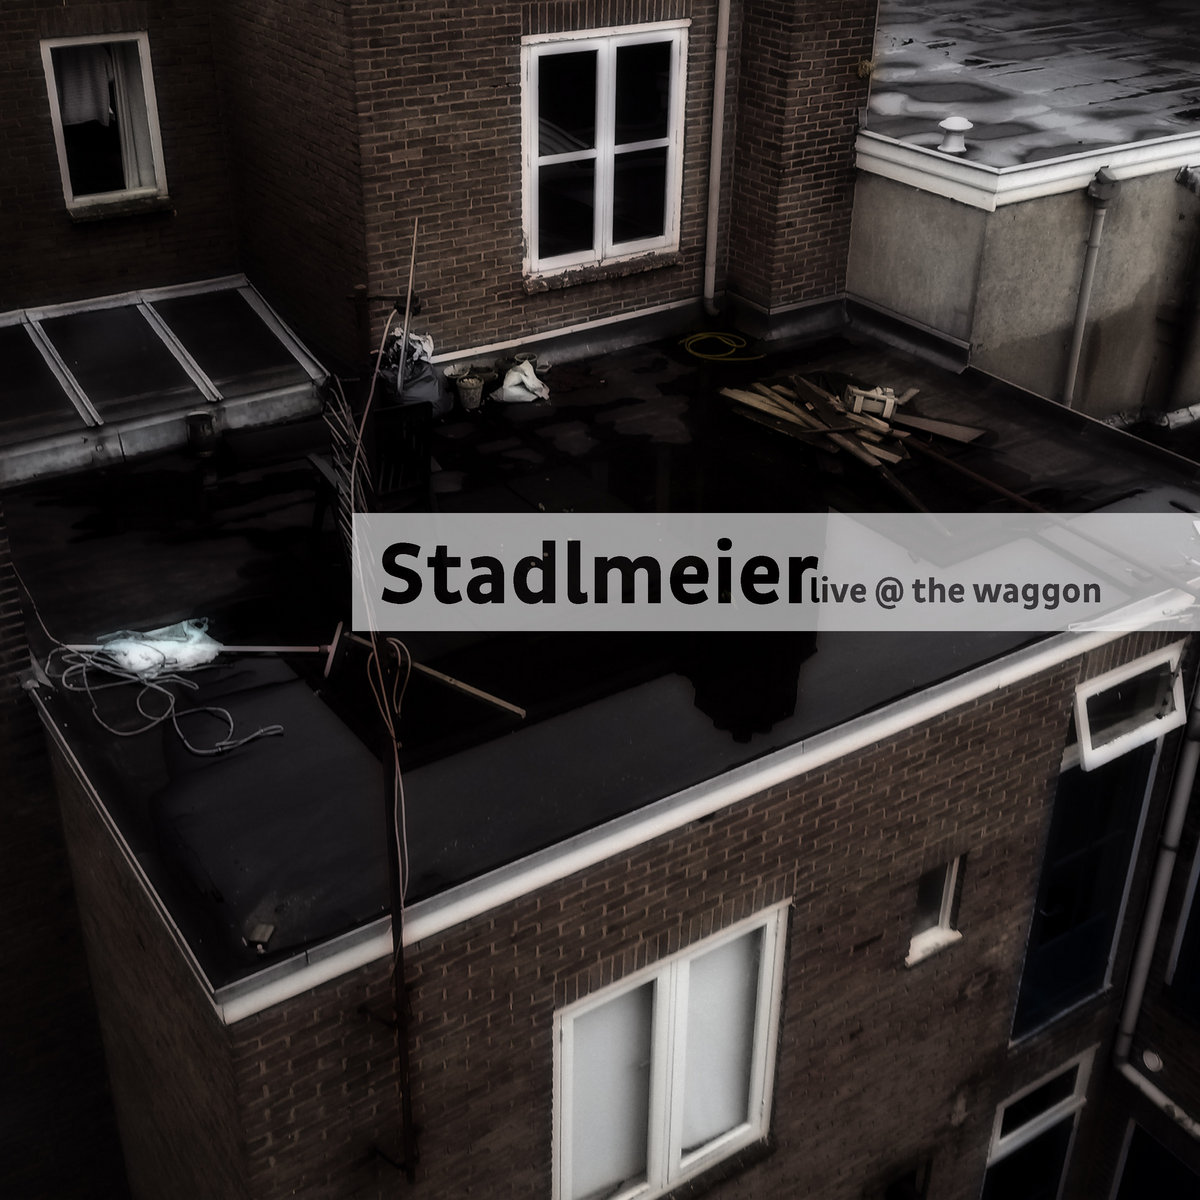 Stadlmeier – live @ the waggon